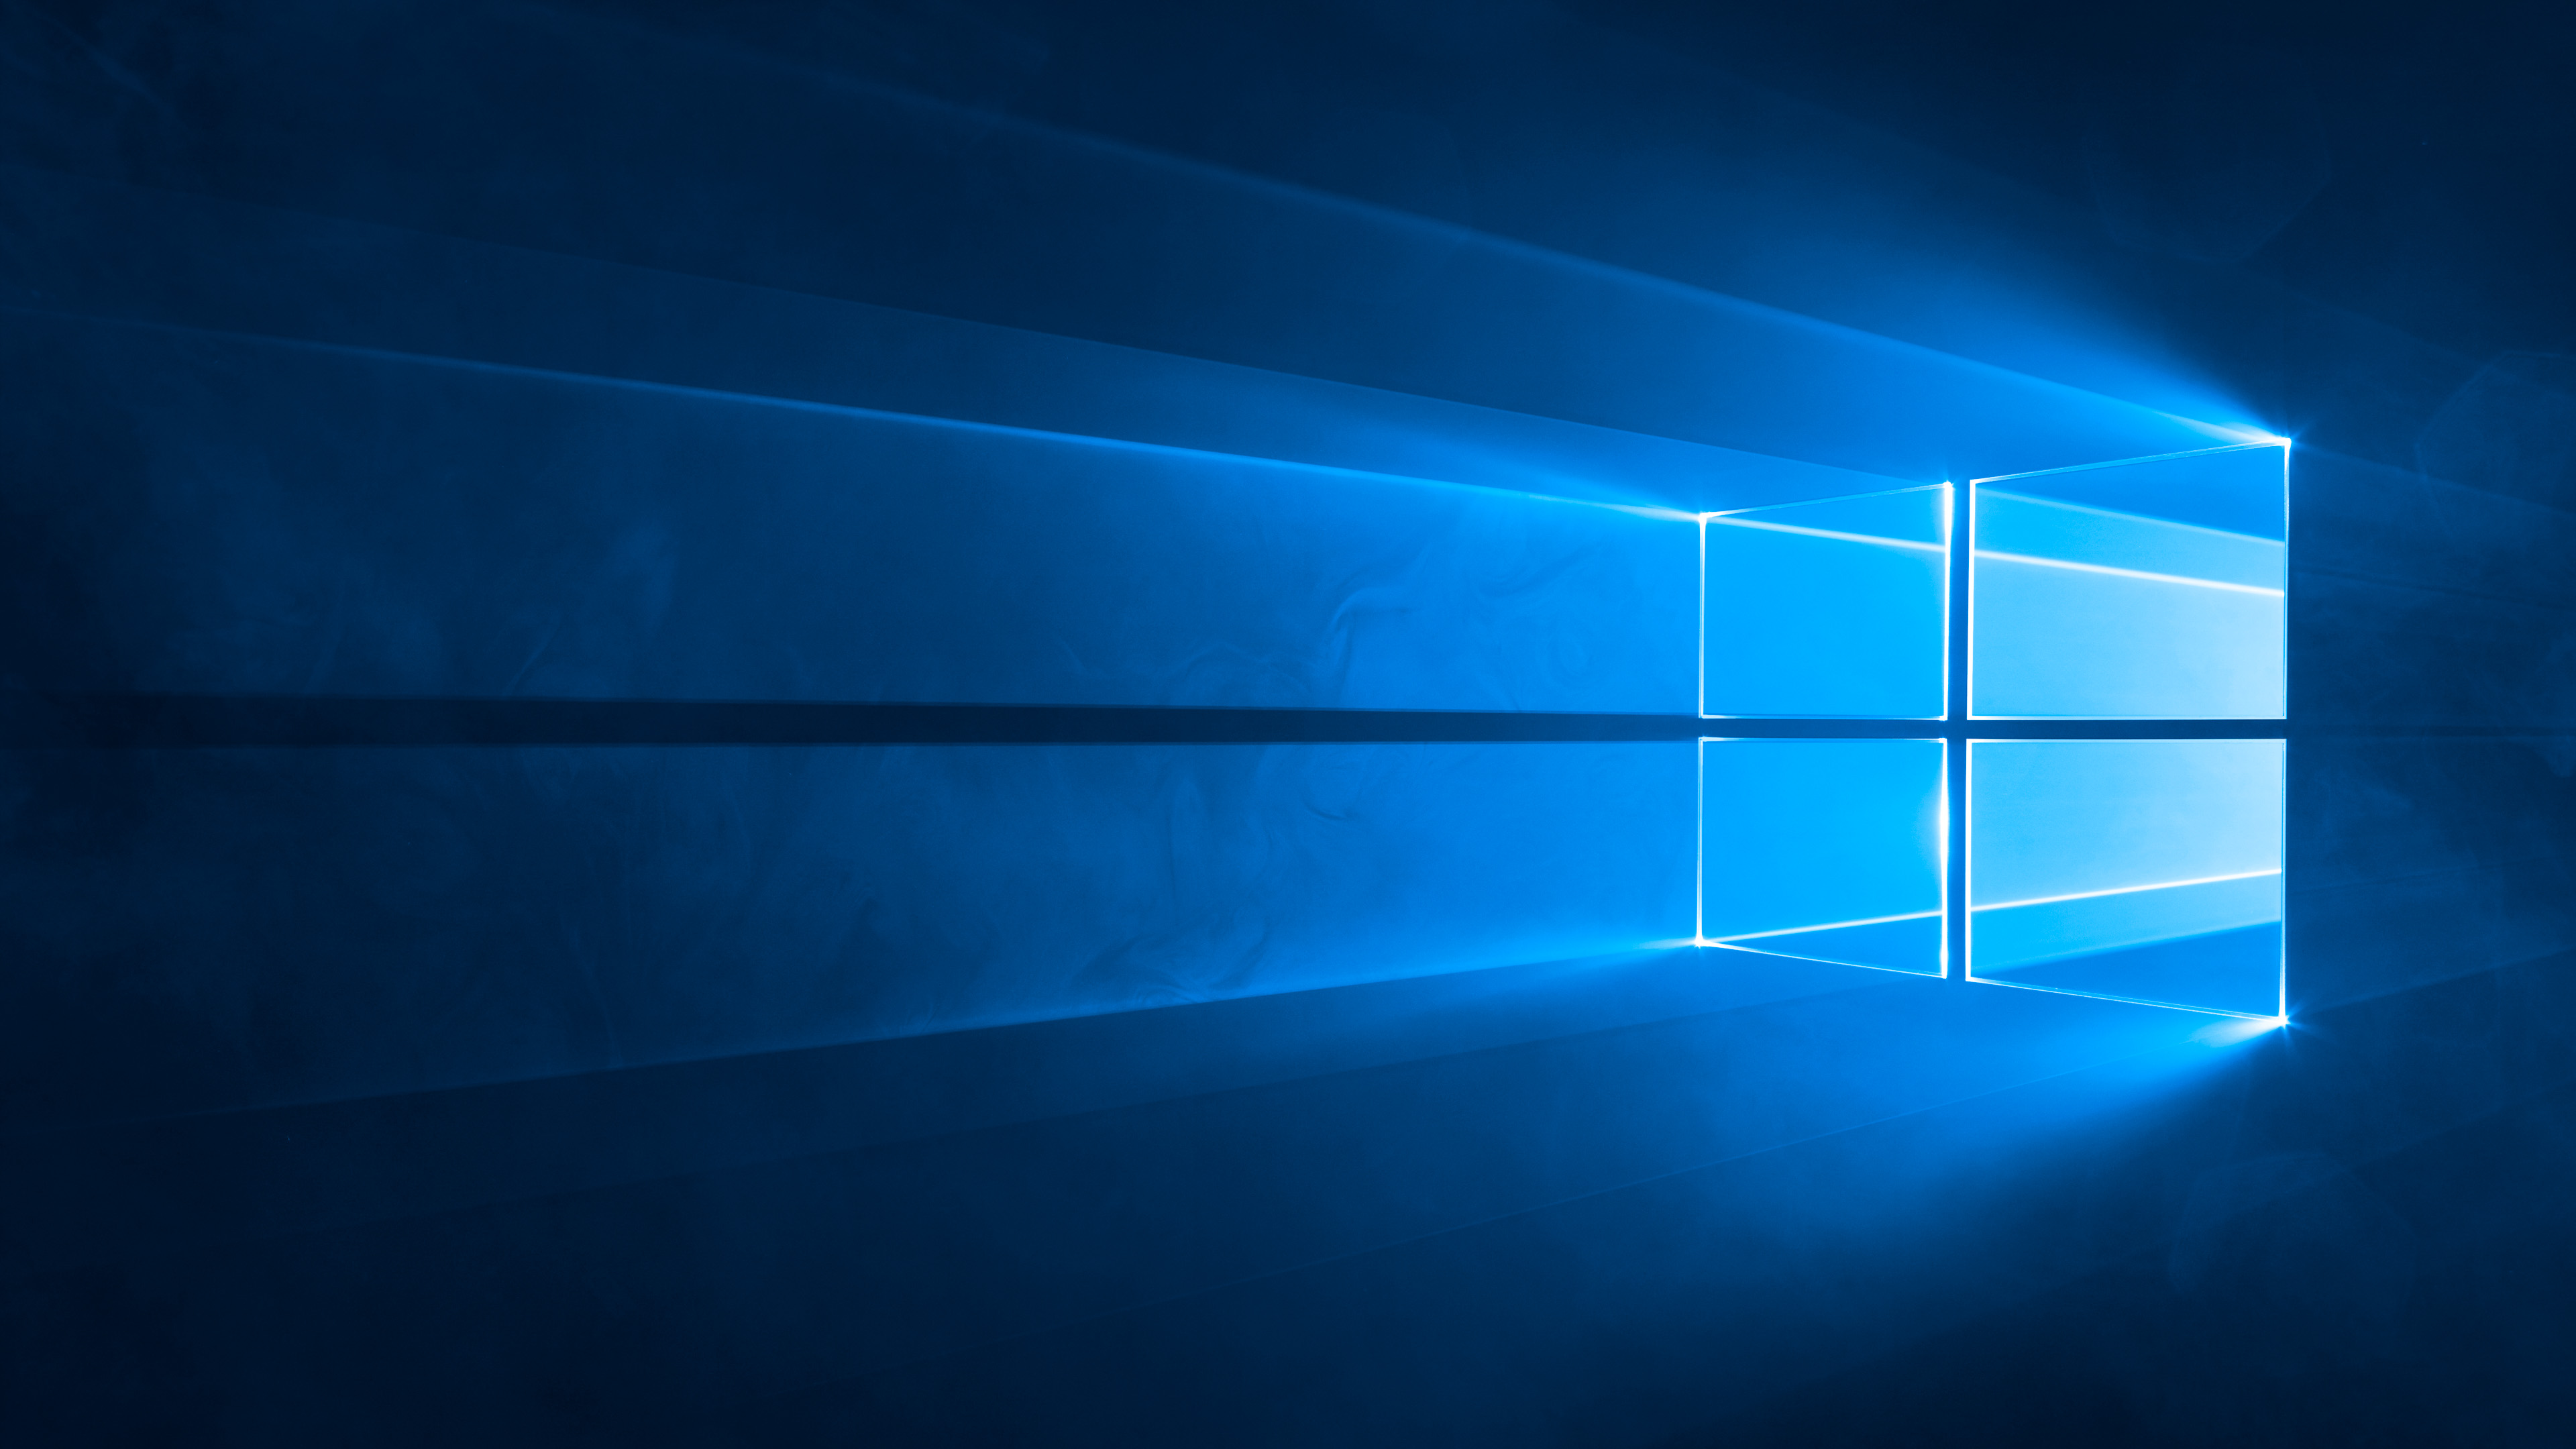 windows 10 4k wallpapers ultra hd top 15 axeetech